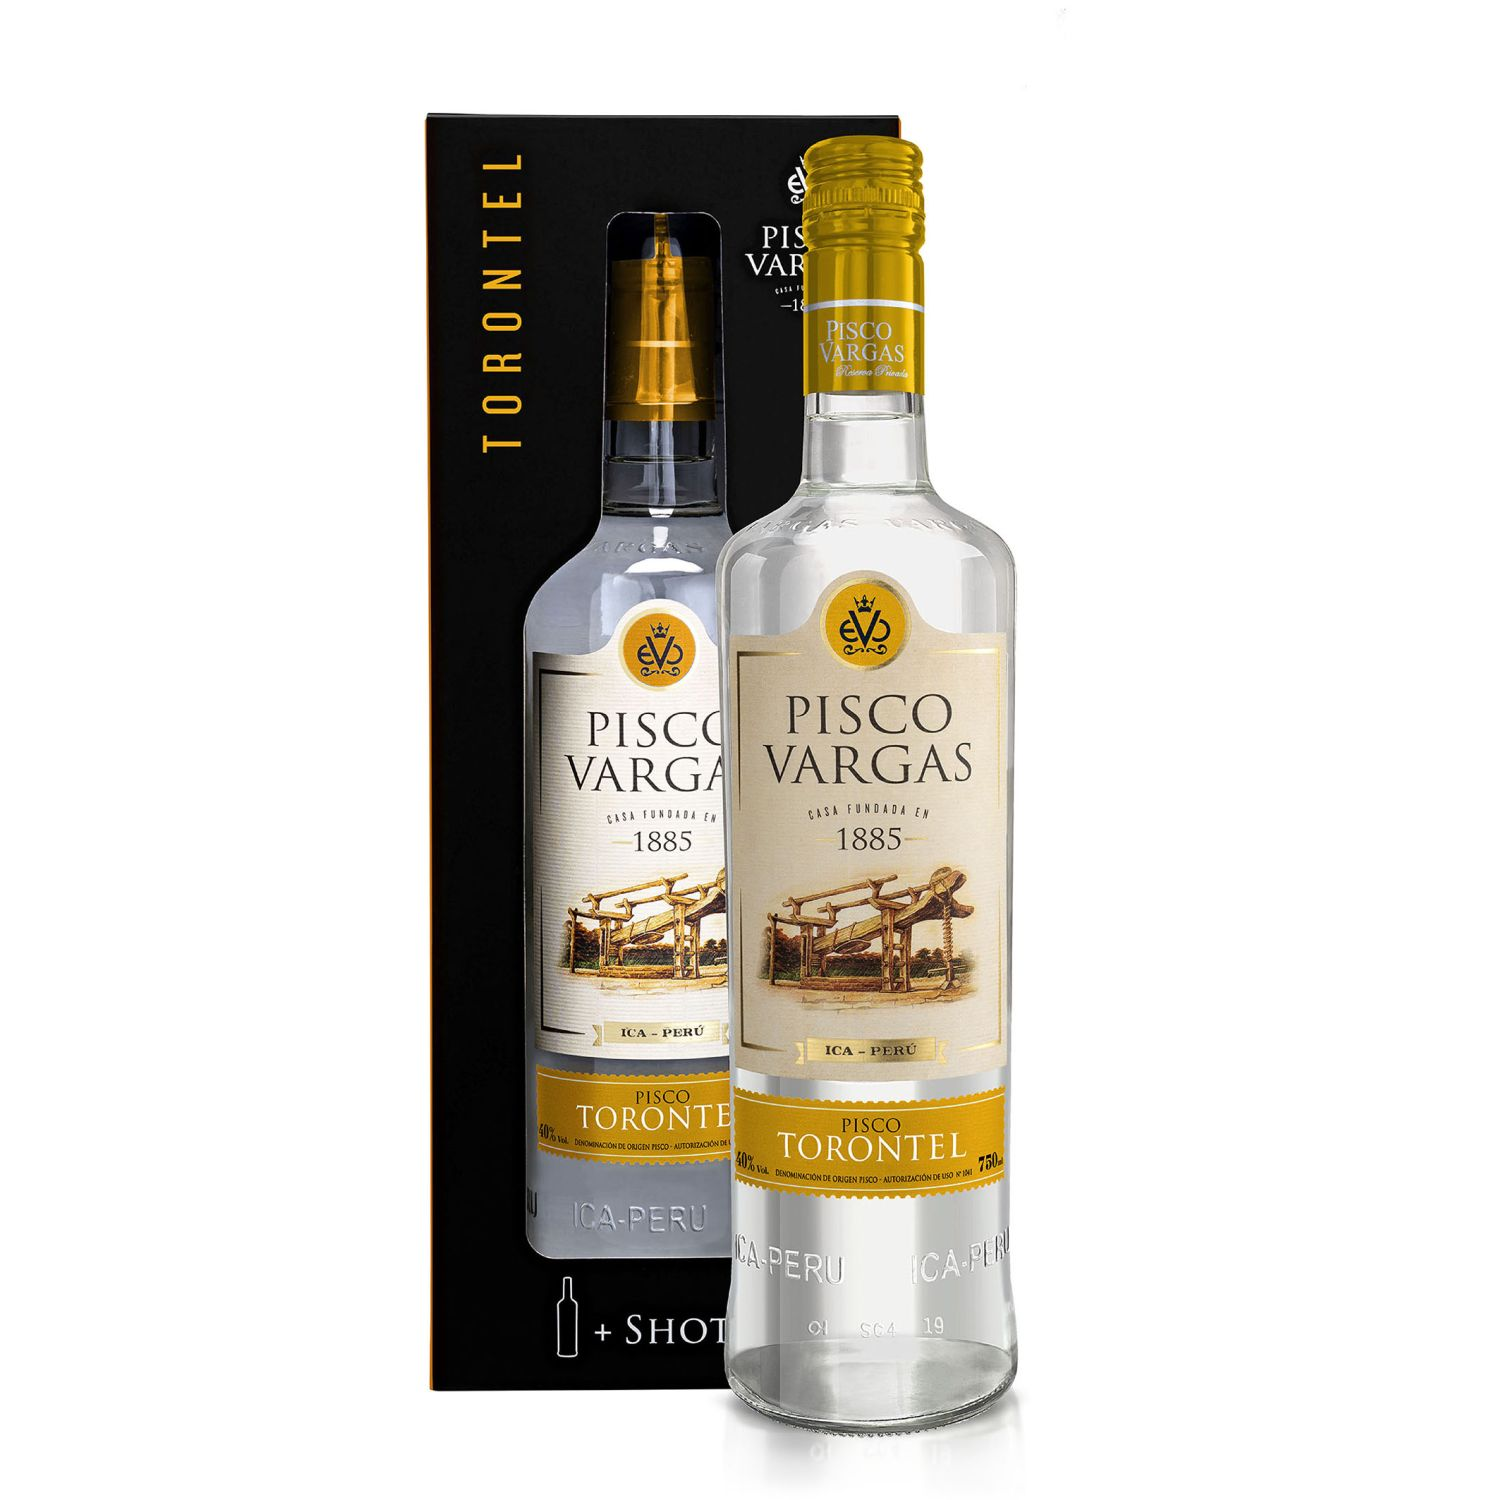 PISCO VARGAS Reserva Privada Torontel Sin color Brandy y aguardientes